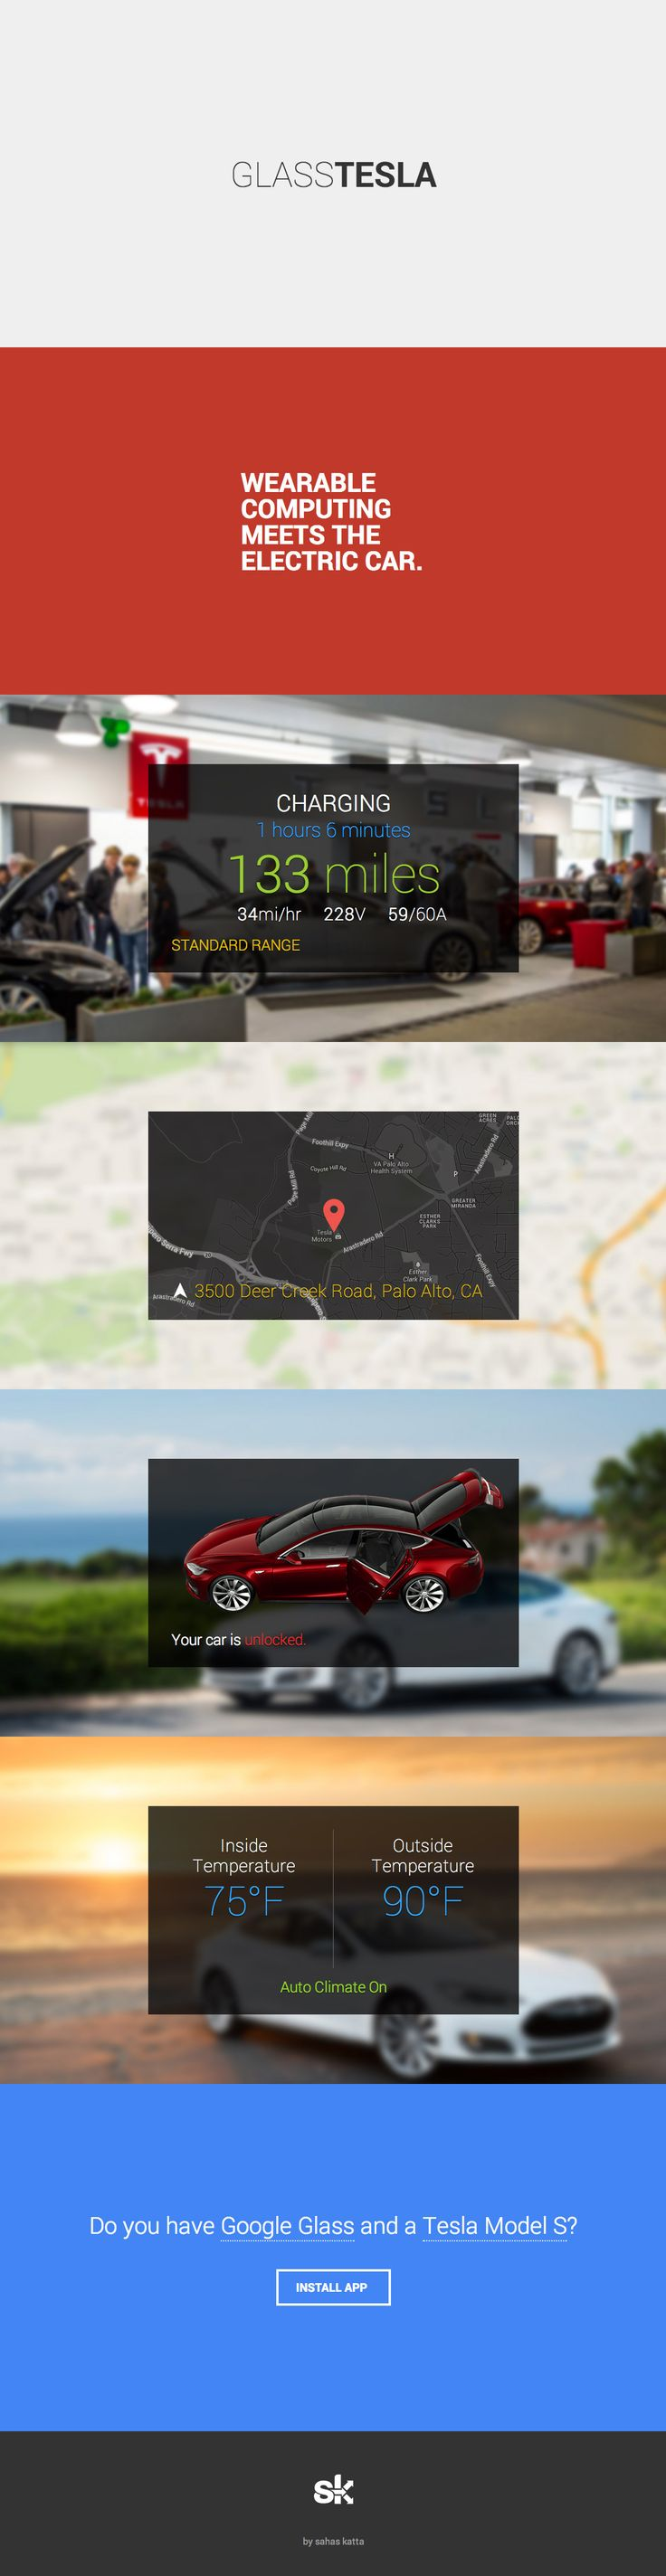 Simple landing page with tons of breathing room that promotes a new app that integrates Google Glass with Tesla's Model S car.